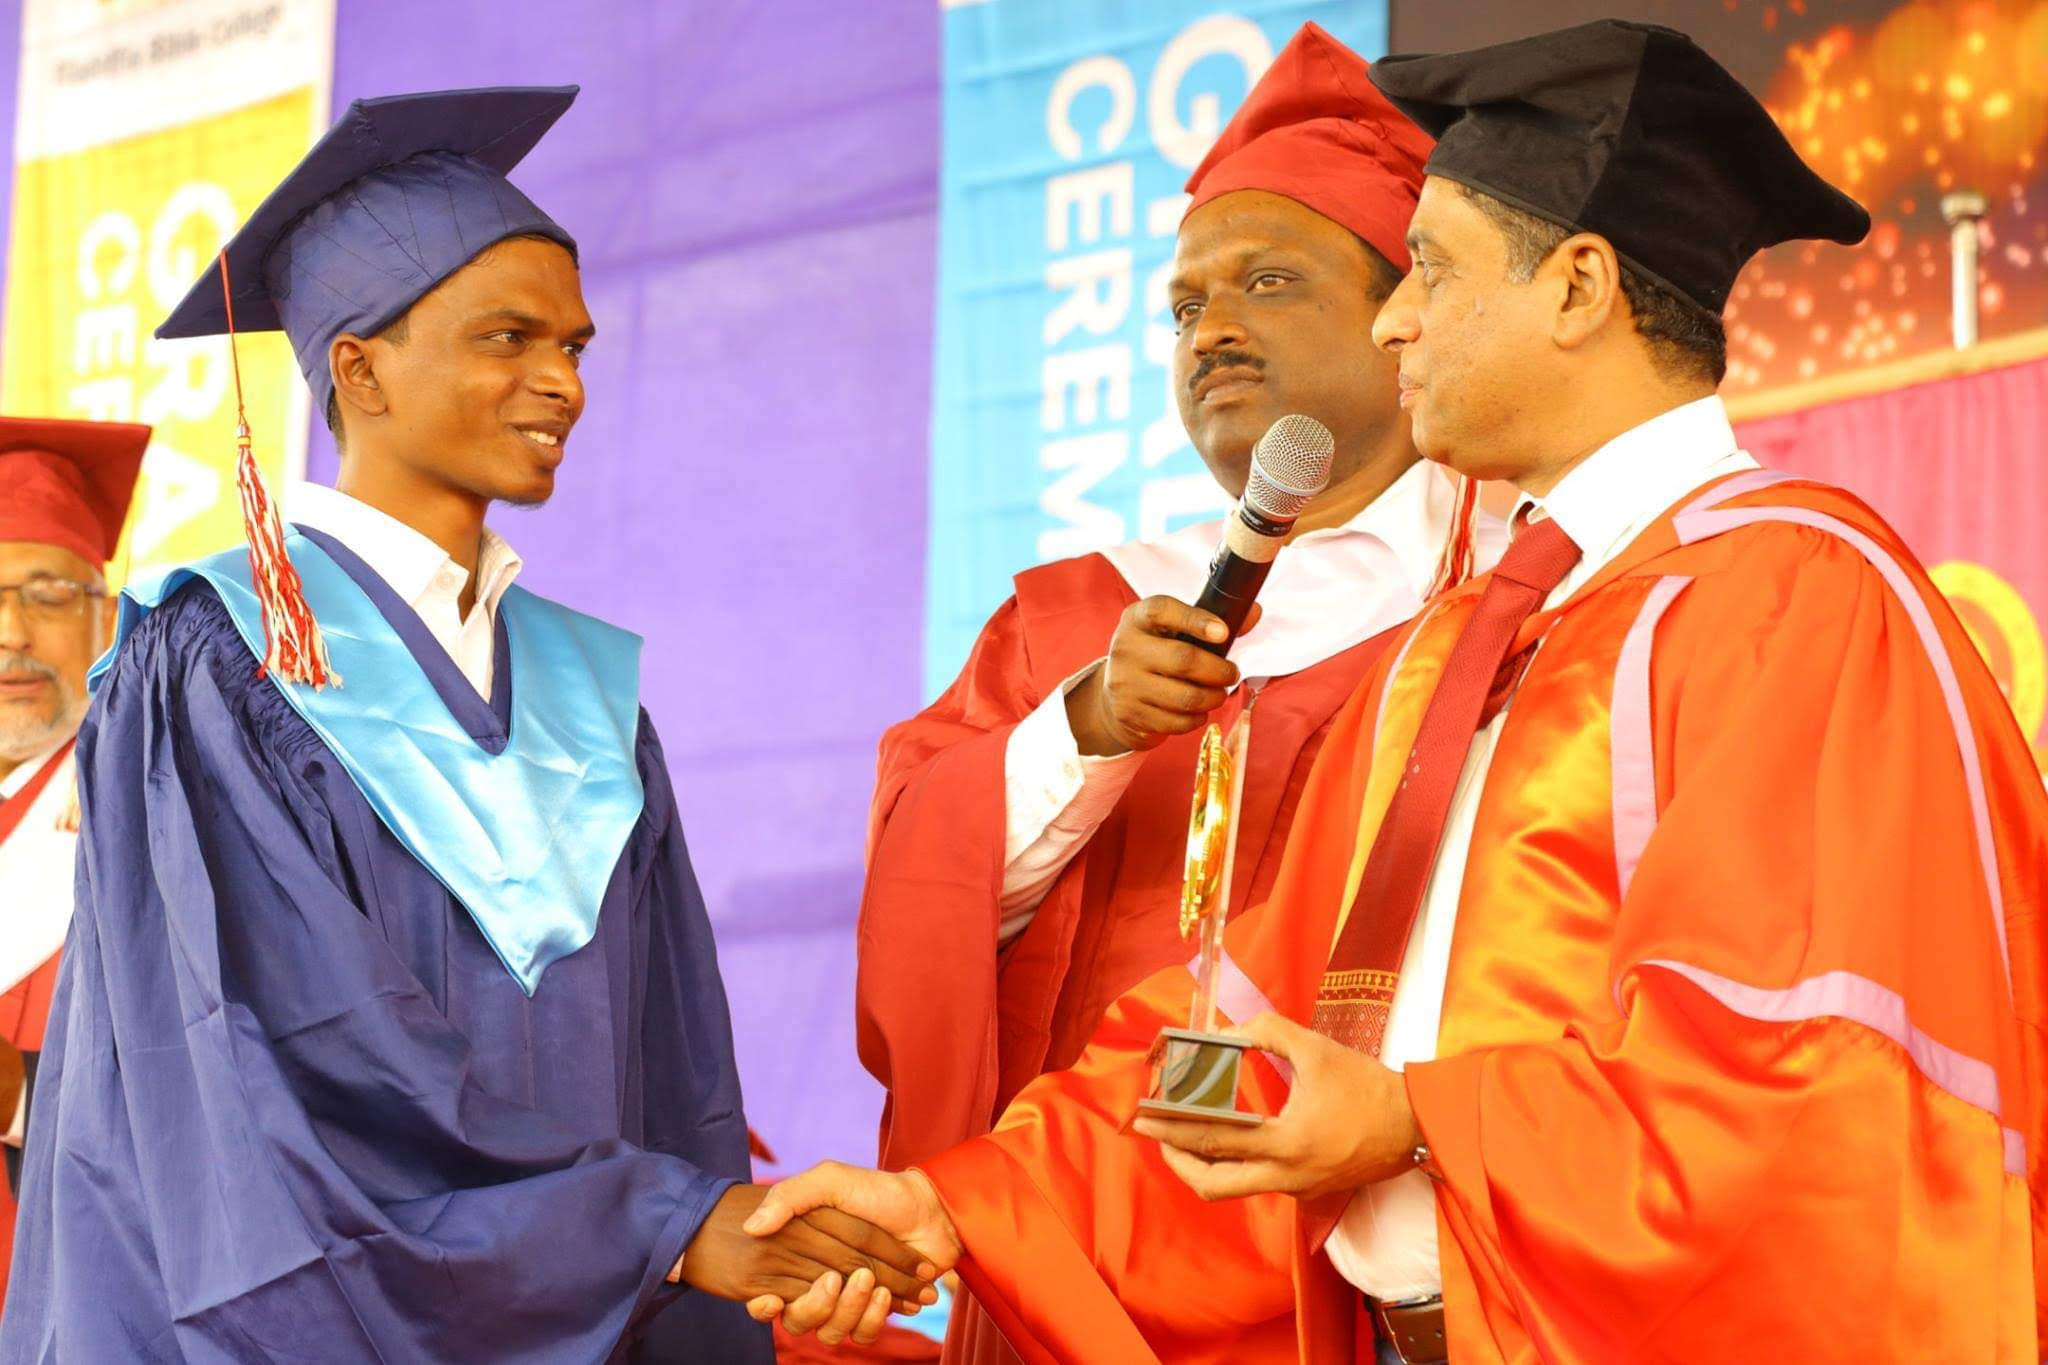 Graduation ceremony of a university